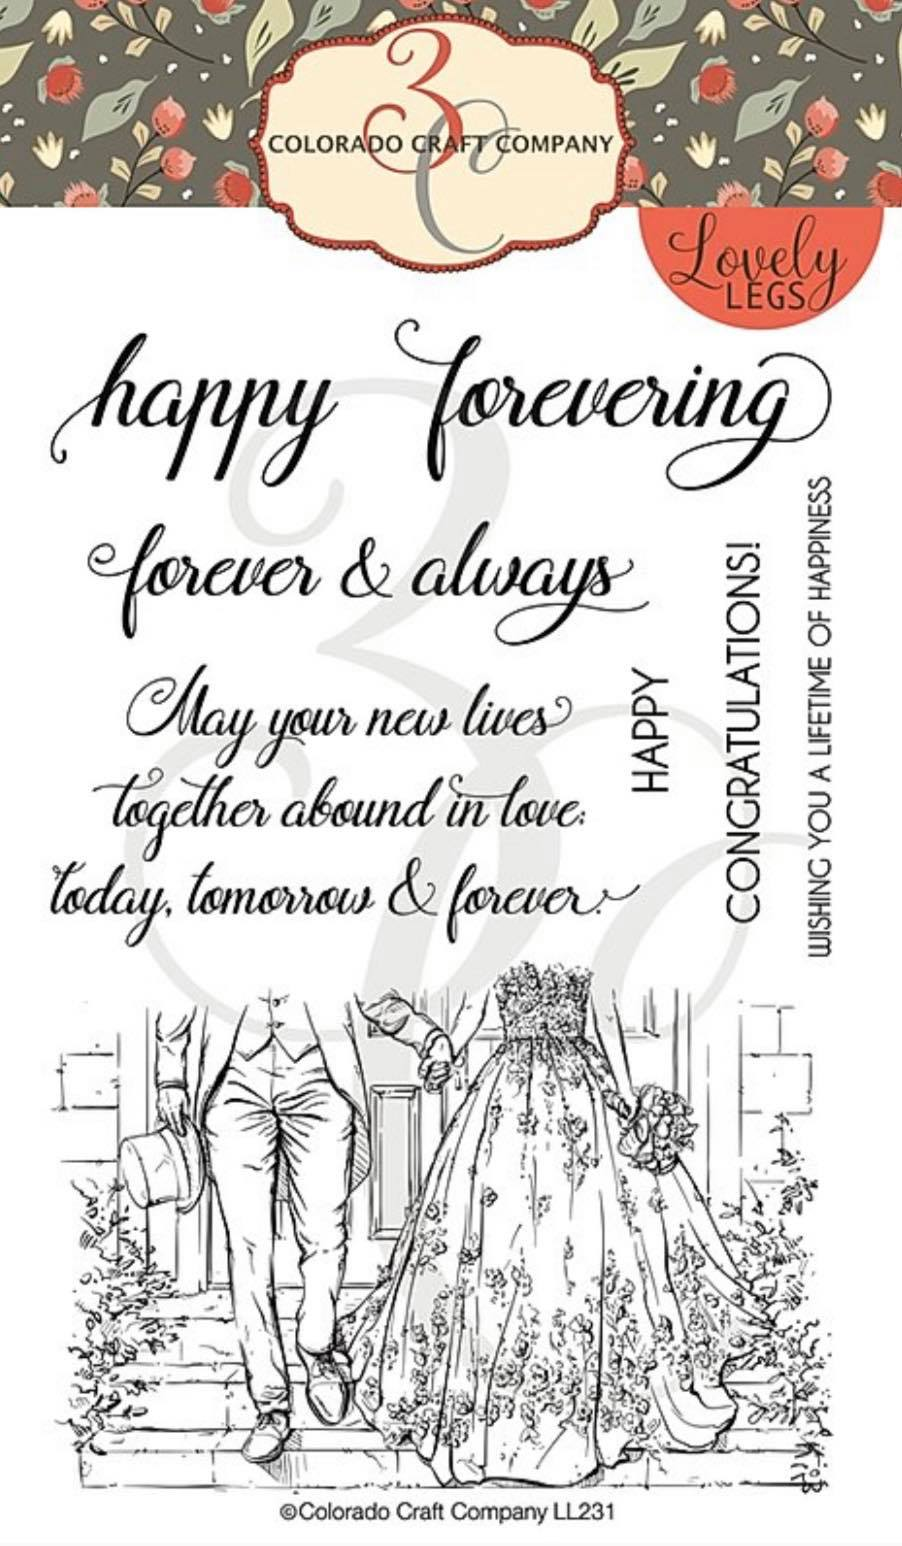 Colorado Craft Co. - Lovely Legs Happy Forevering Stamp Set